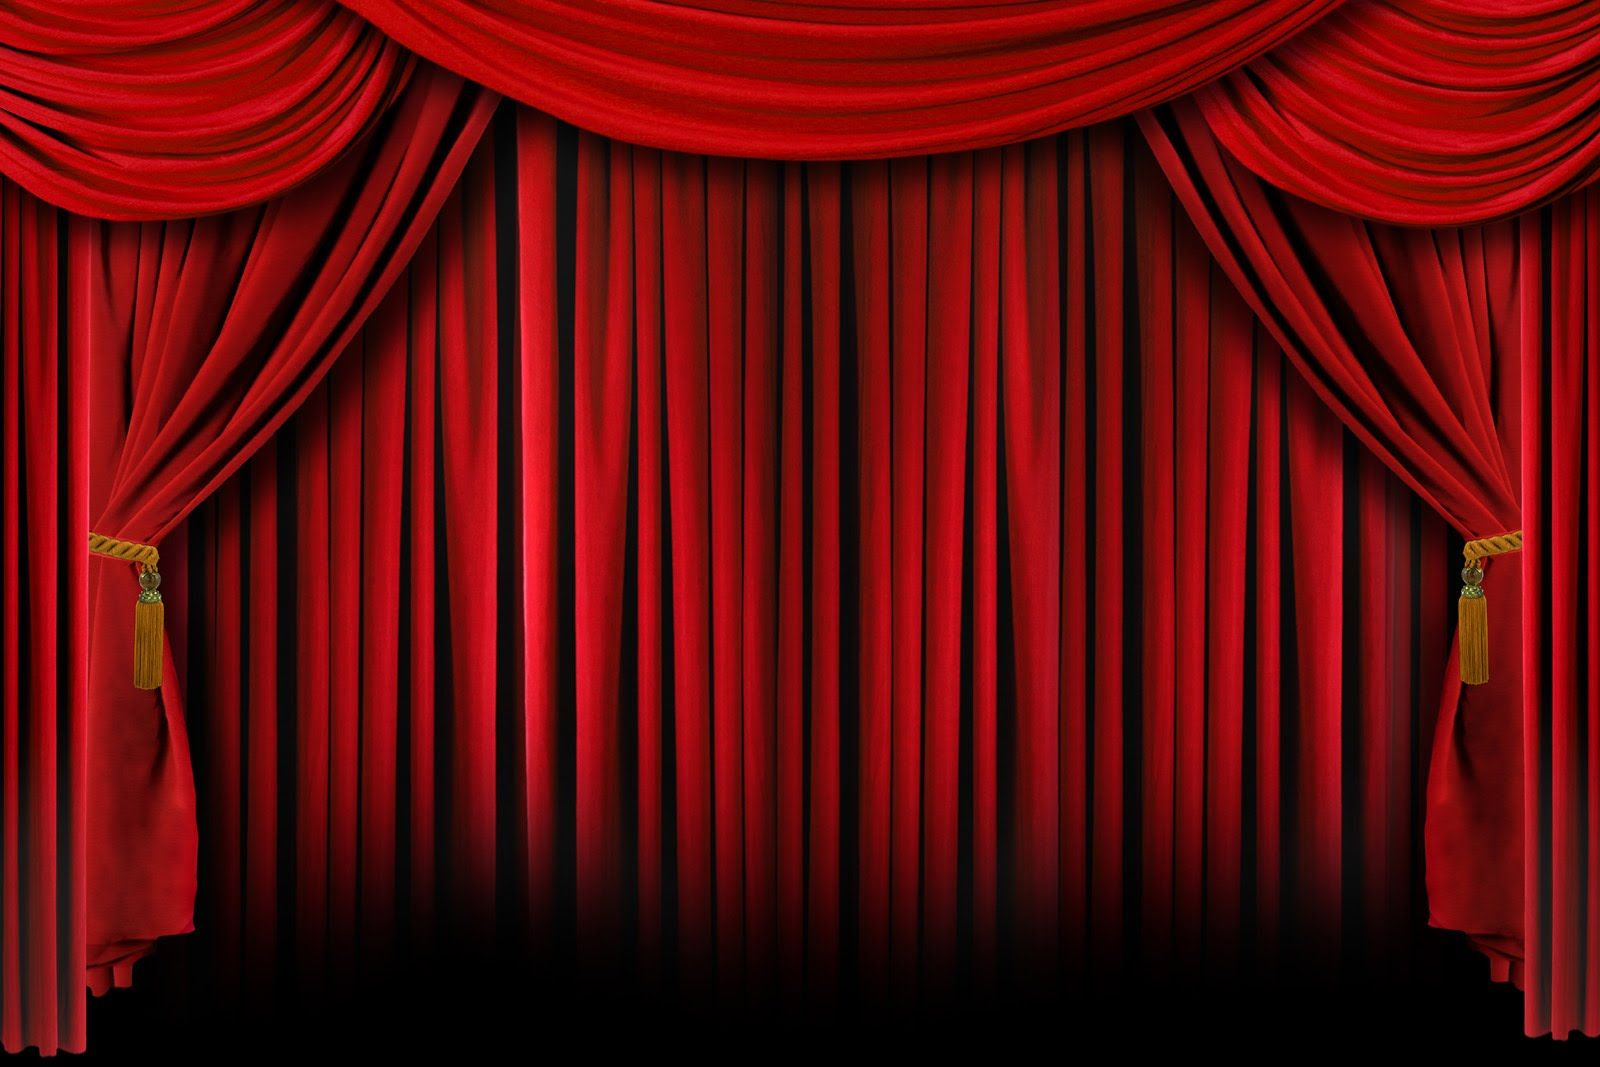 behind the curtain - Google Search | Terize Farmer | Pinterest for Red Show Curtains  56mzq